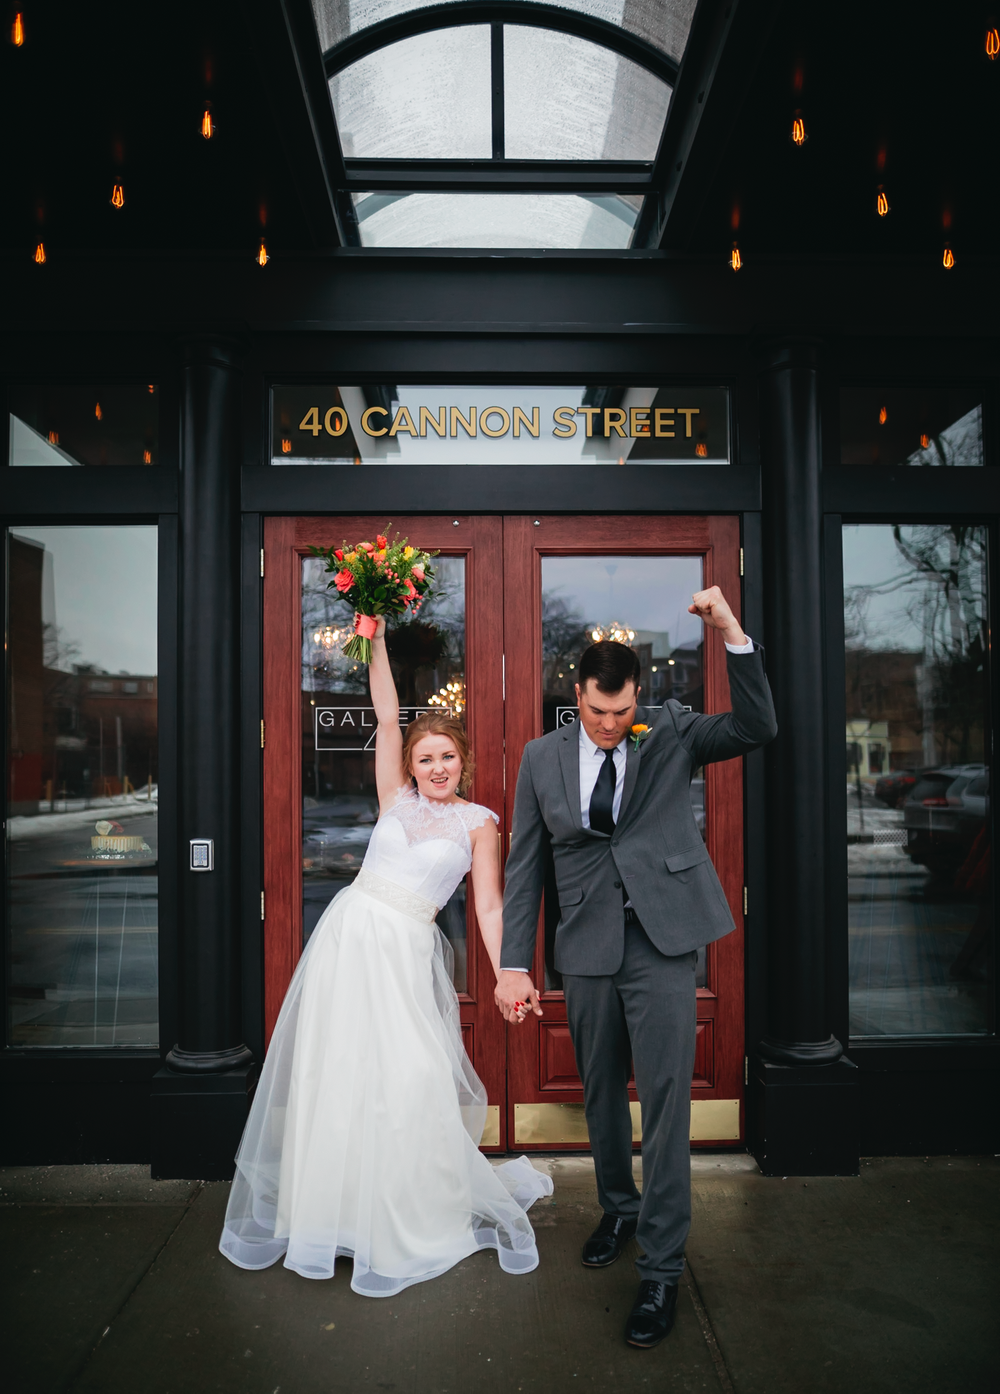 Elopement at Revel 32 and 40 Cannon in Poughkeepsie New York